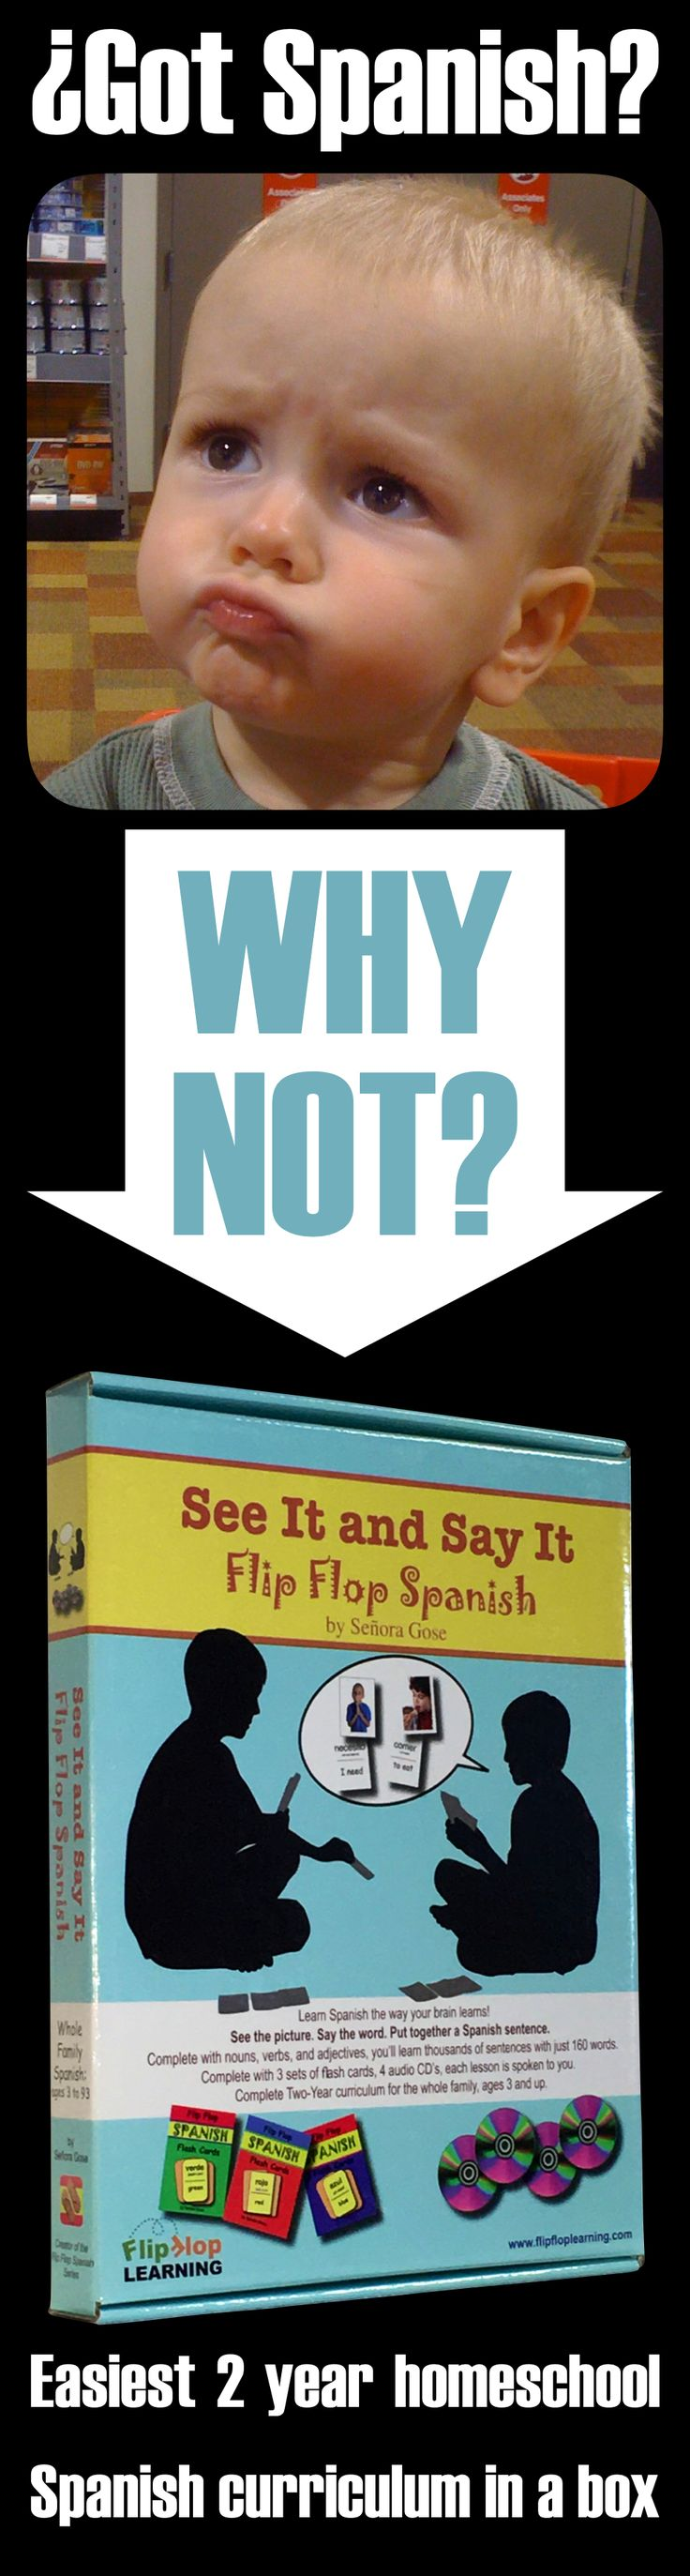 Why are you waiting to learn Spanish?  Start today with our two year Spanish curriculum in a box!  Teach your whole family at the same time with flash cards, charades, crosswords, word searches, skits, speed drills, drawing, and many more activities. Learn nouns, verbs, adjectives and thousands of Spanish sentences using only 160 words!  Comes complete with audio CDs to guide you along too!